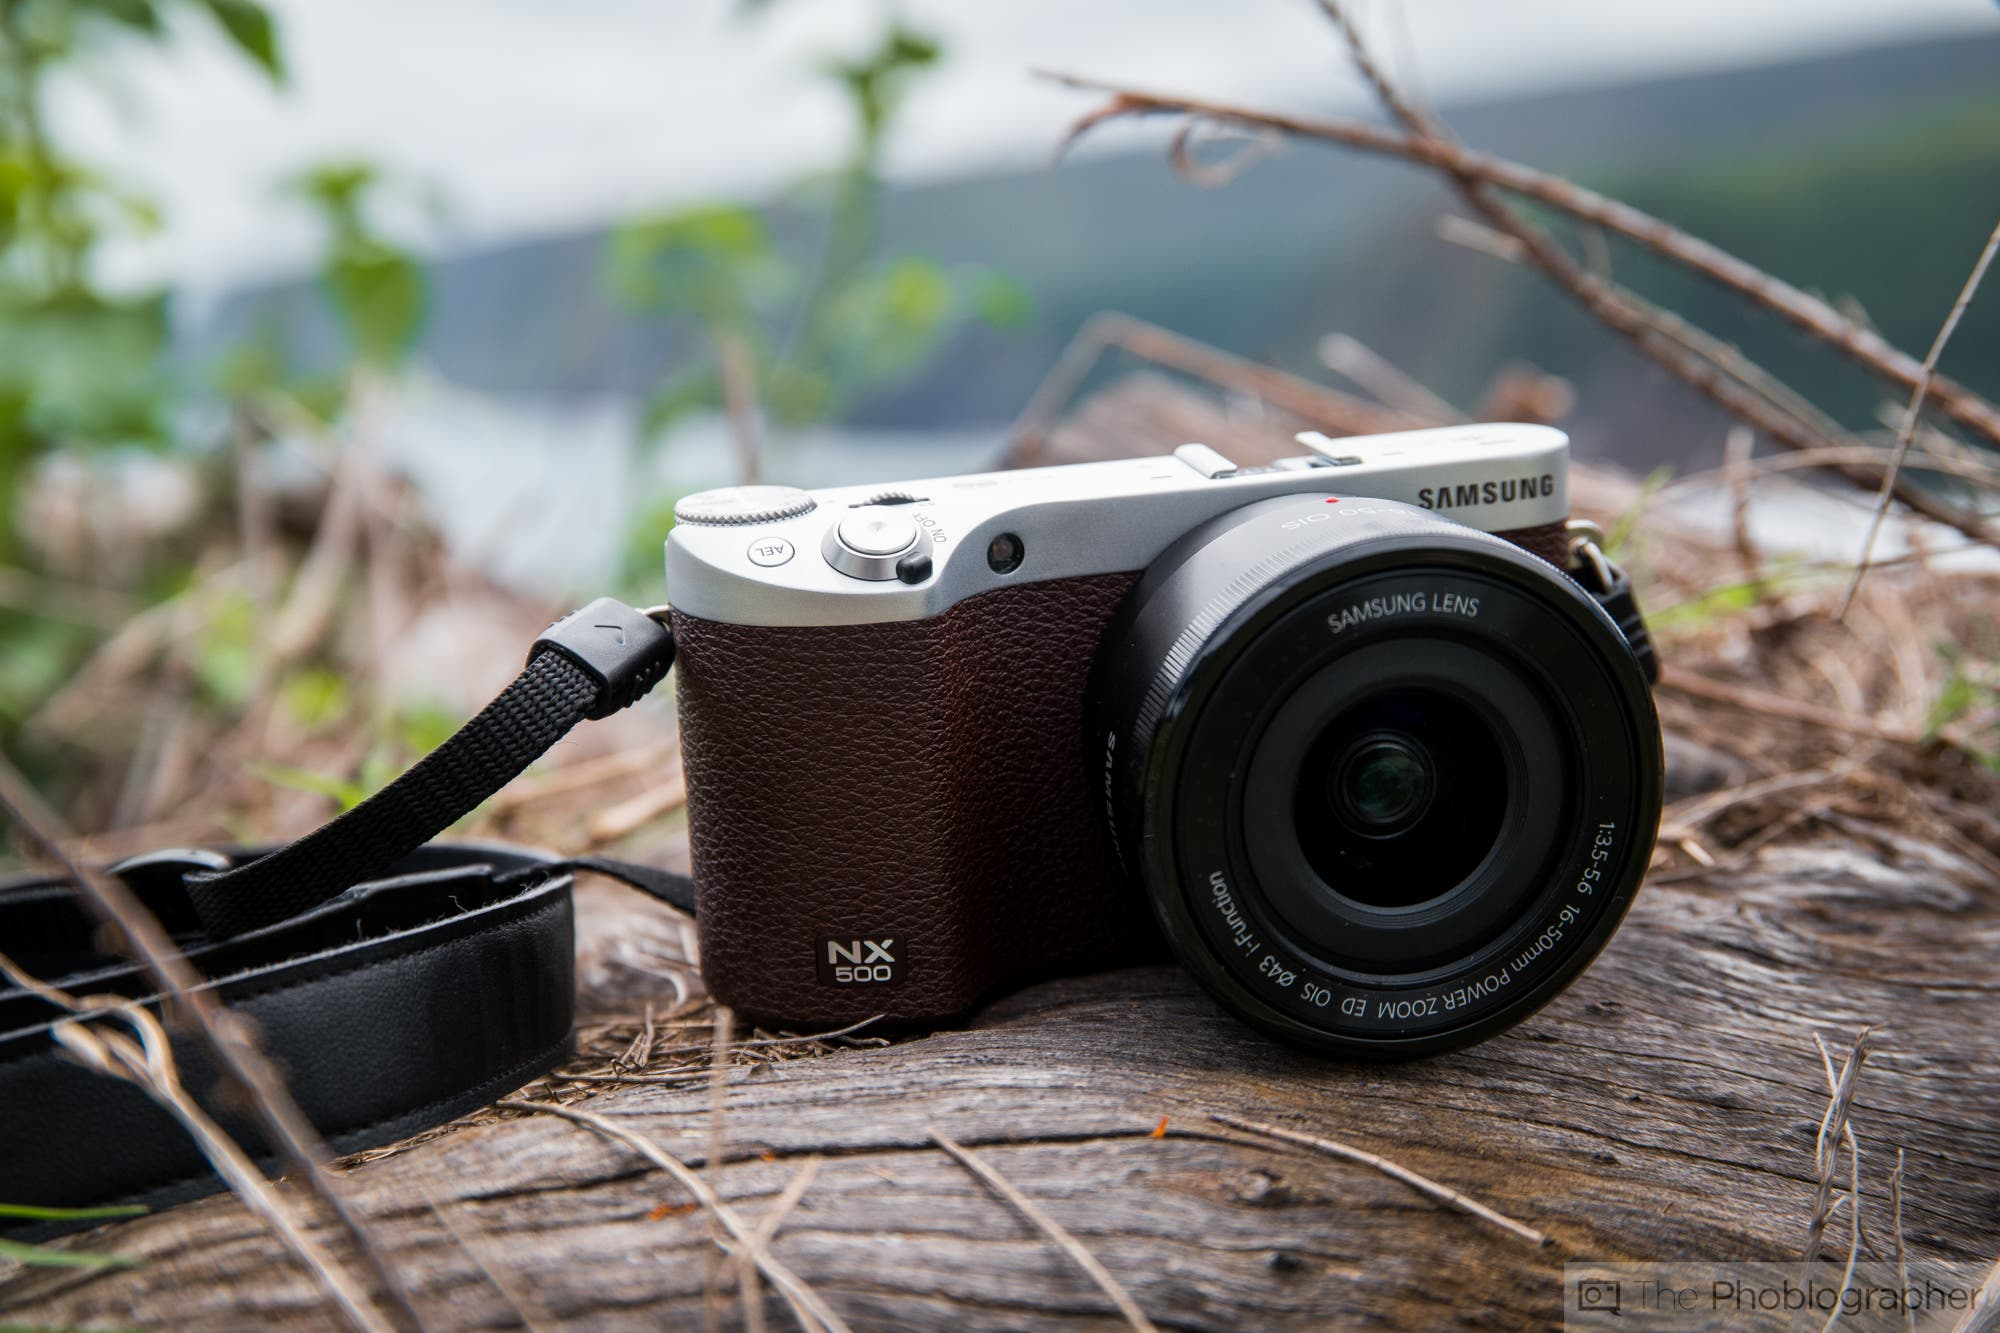 Four Years Later, Samsung's NX500 Is Still DXOMark's #2 APS-C Camera